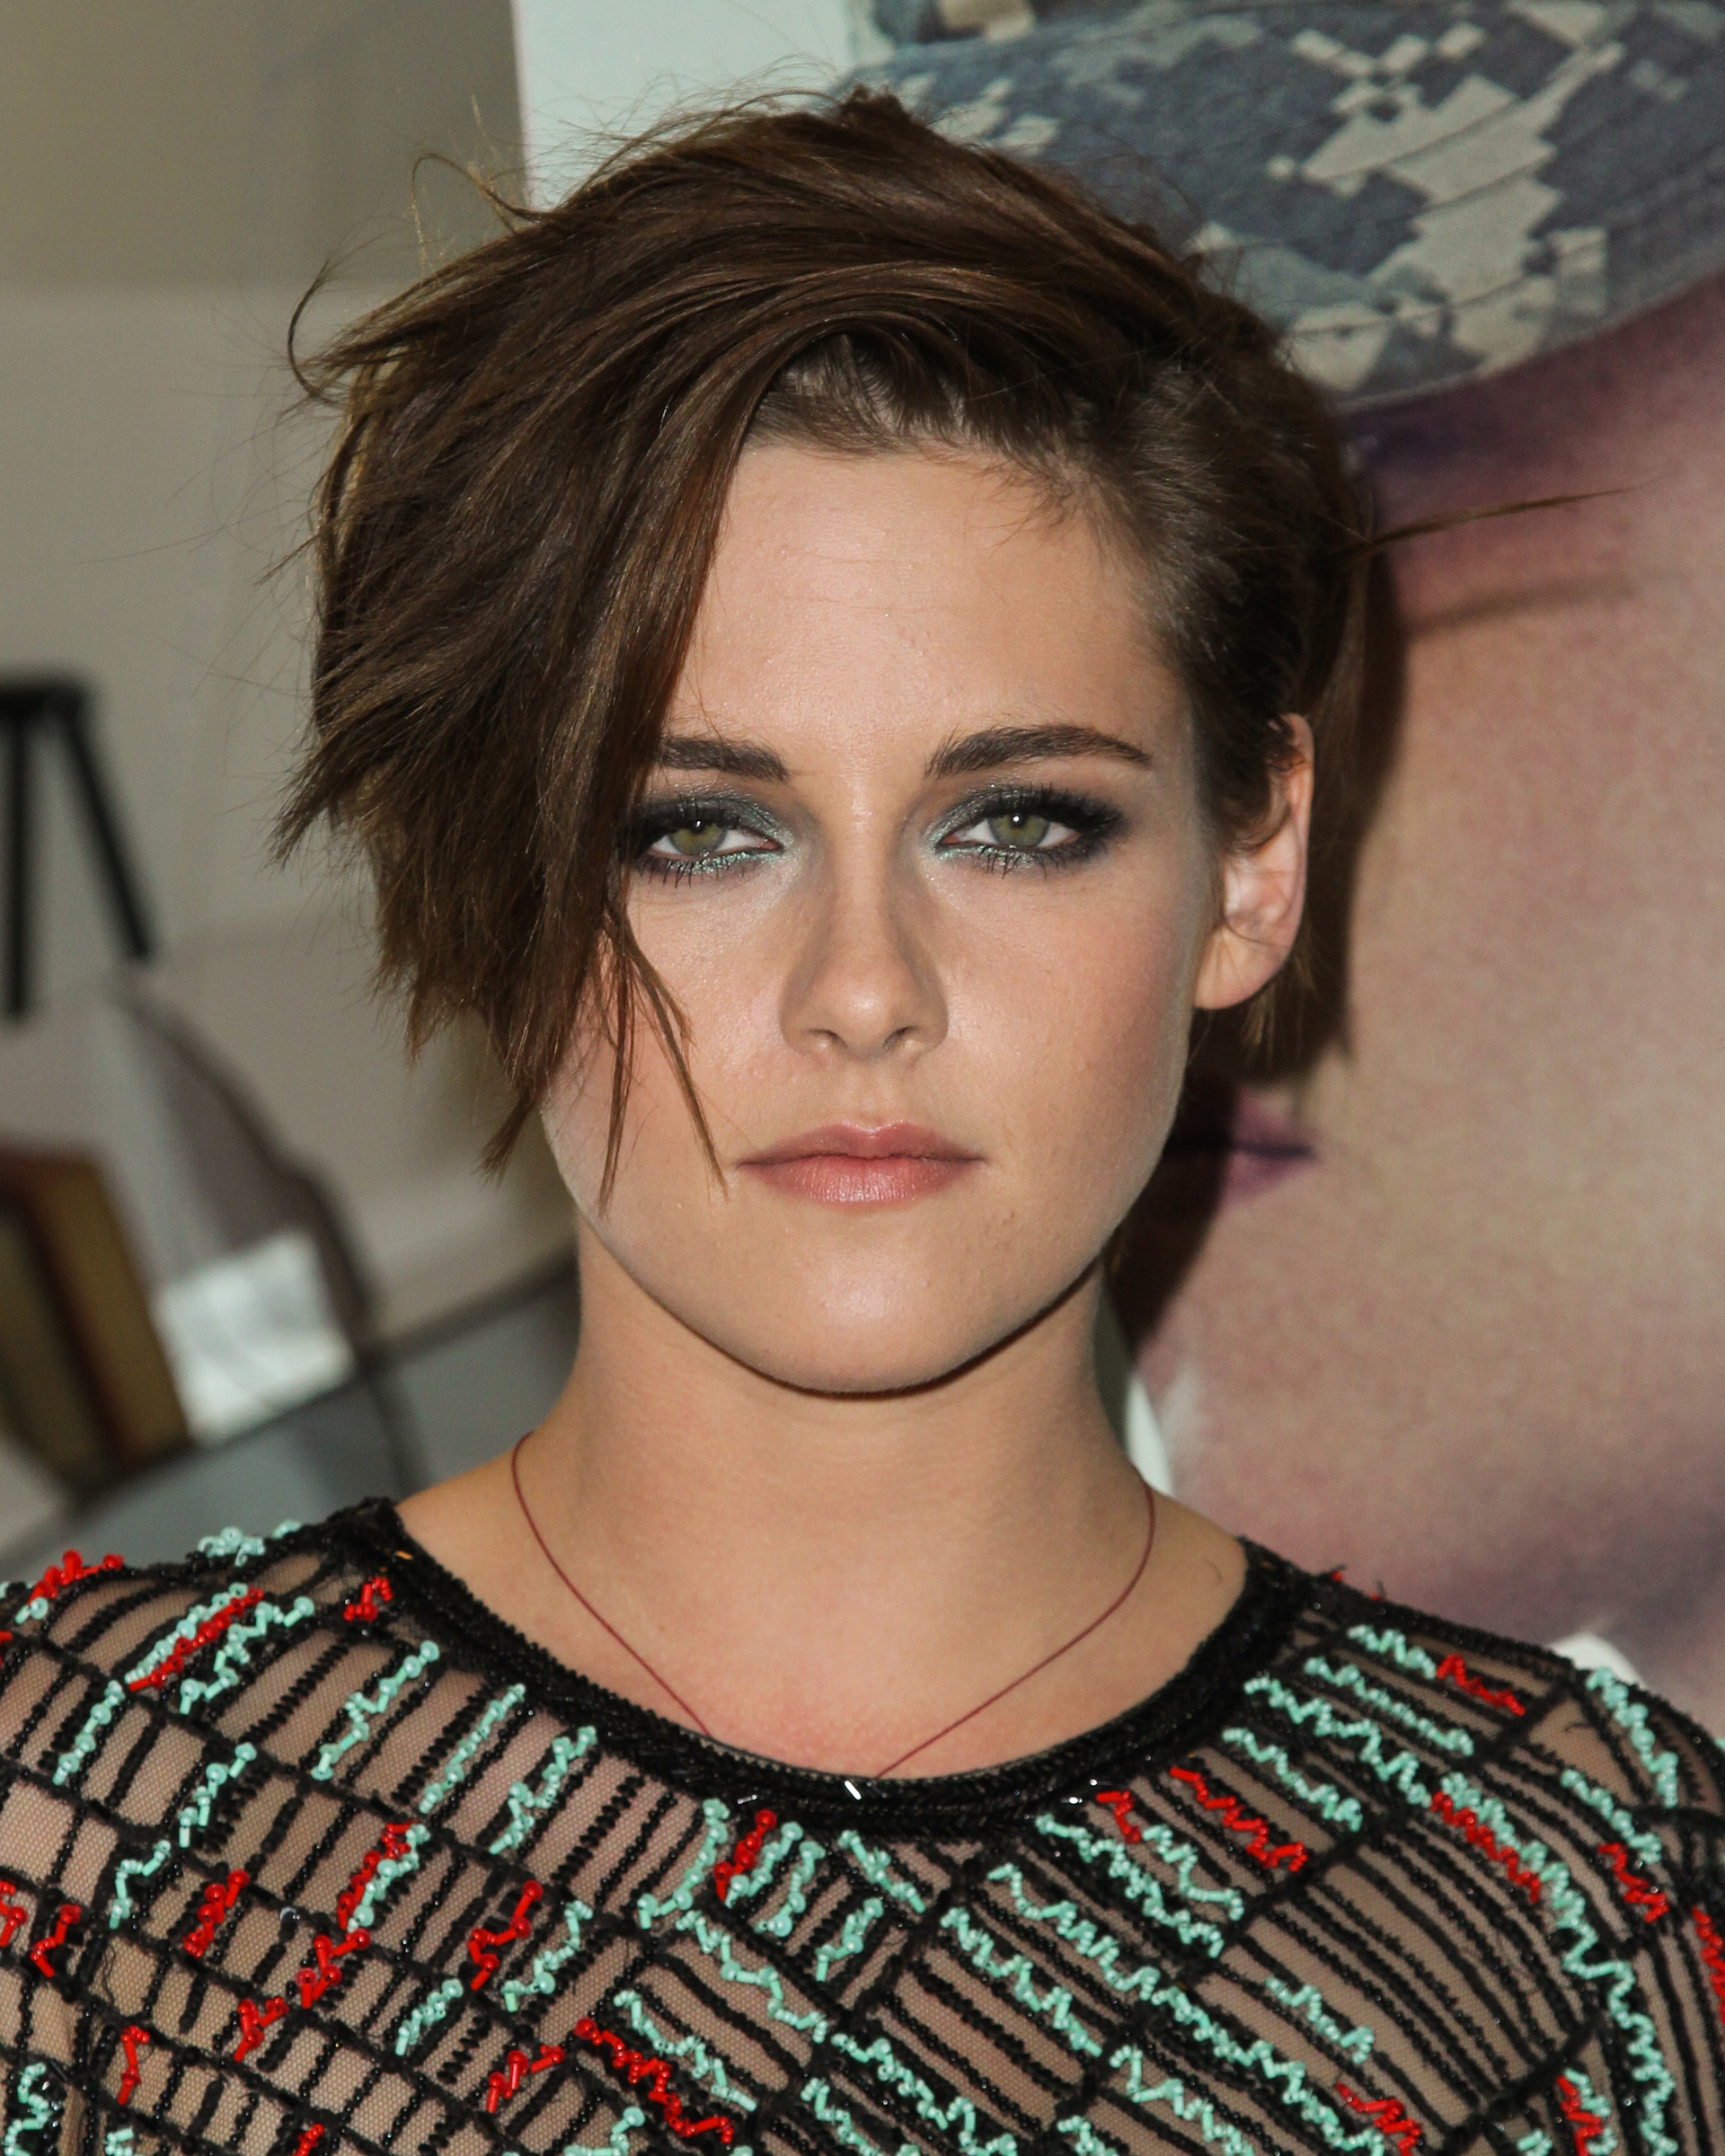 Best sexy beauty look: Kristen Stewart